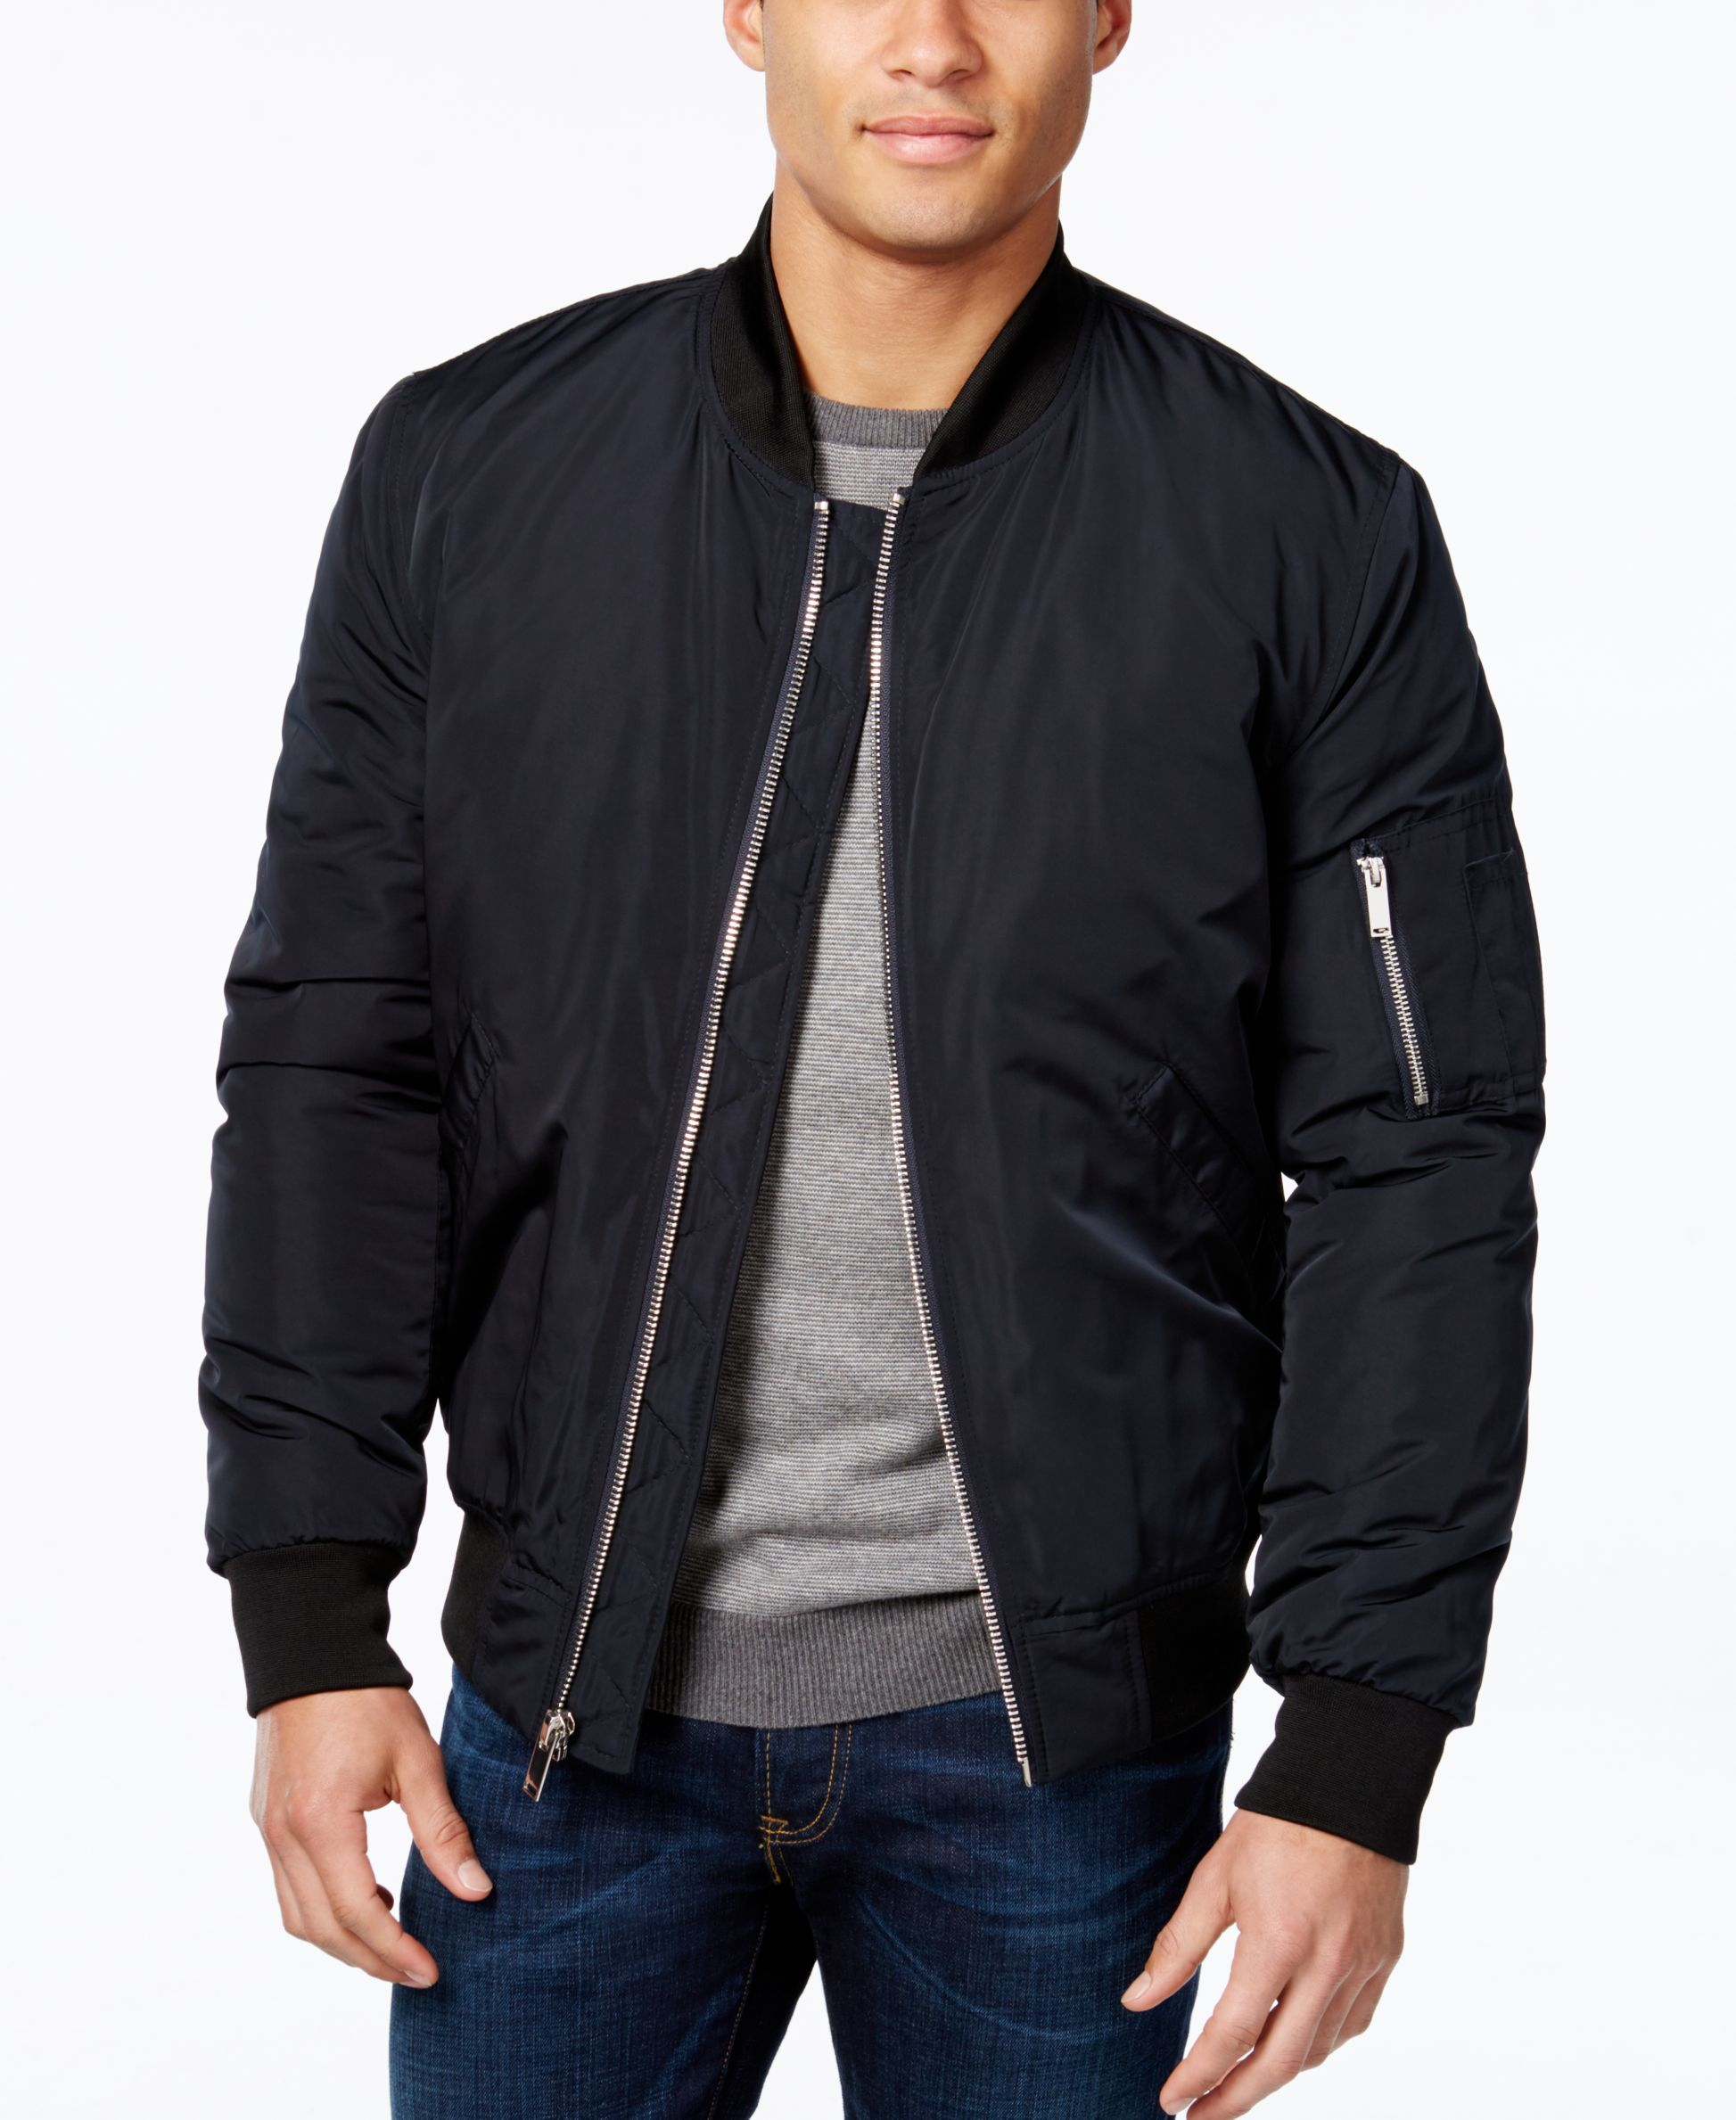 Vince Camuto Men's Lined Bomber Jacket Coats & Jackets